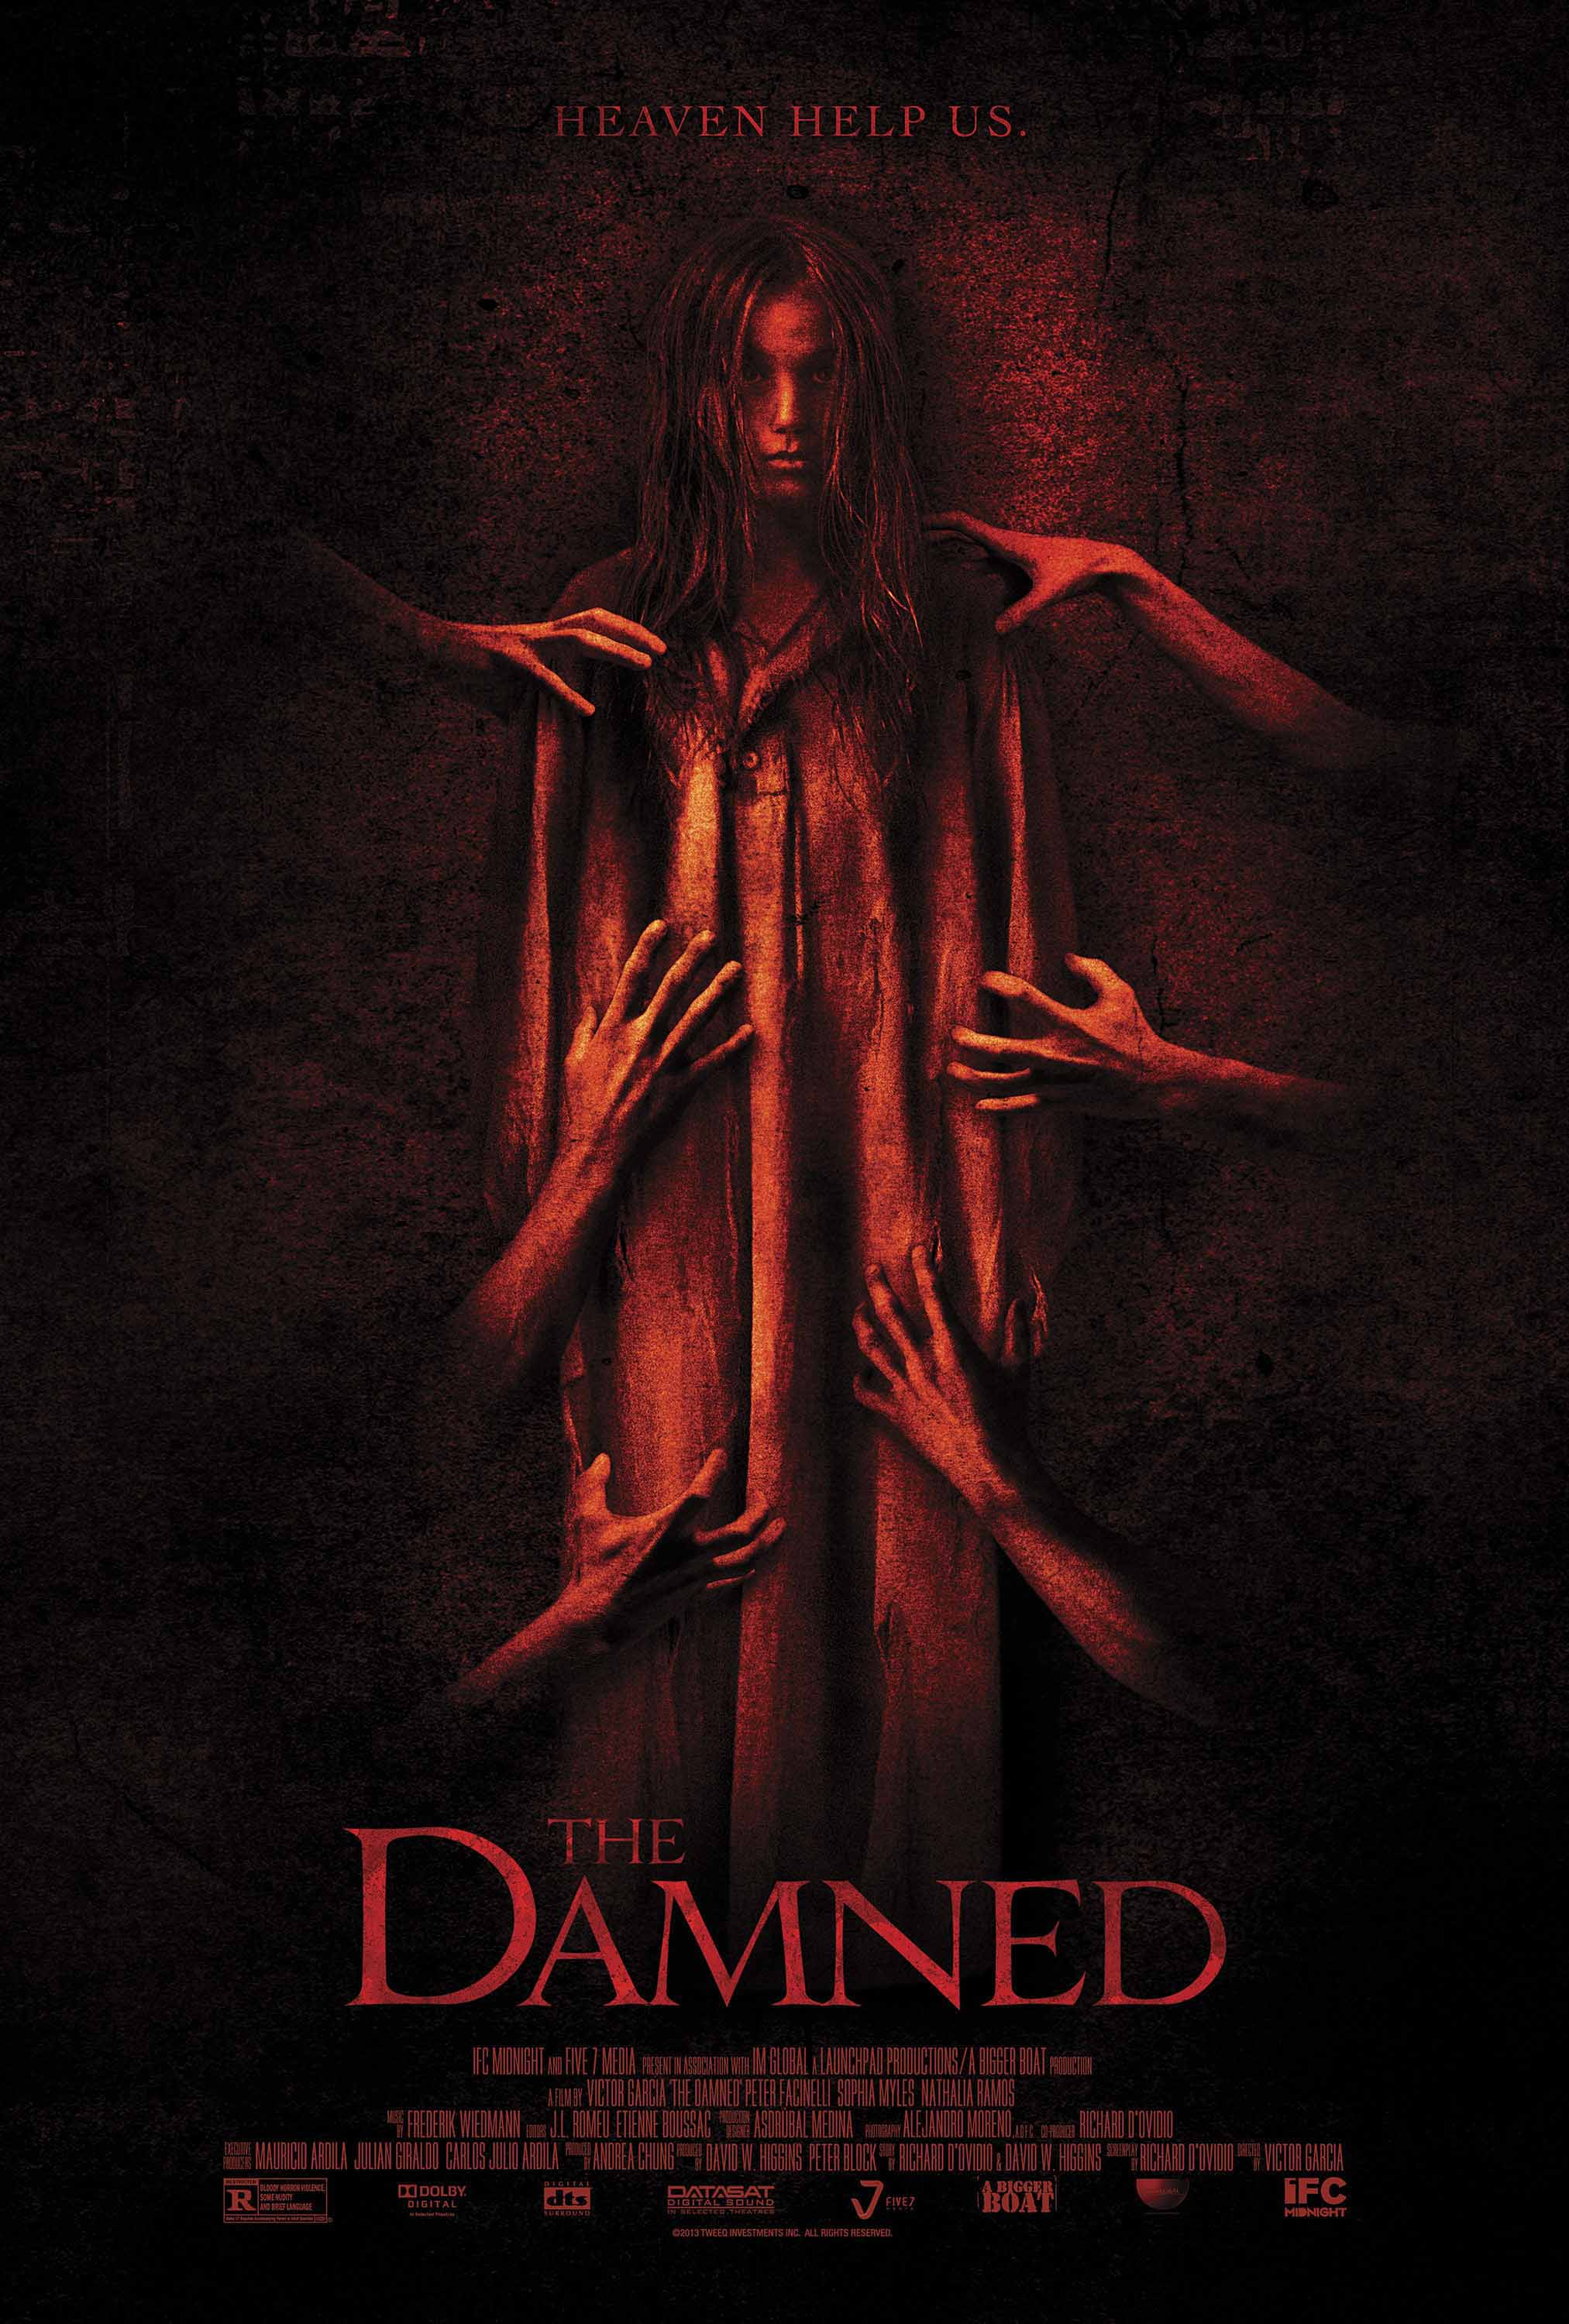 The Damned (2013) Full Movie Poster